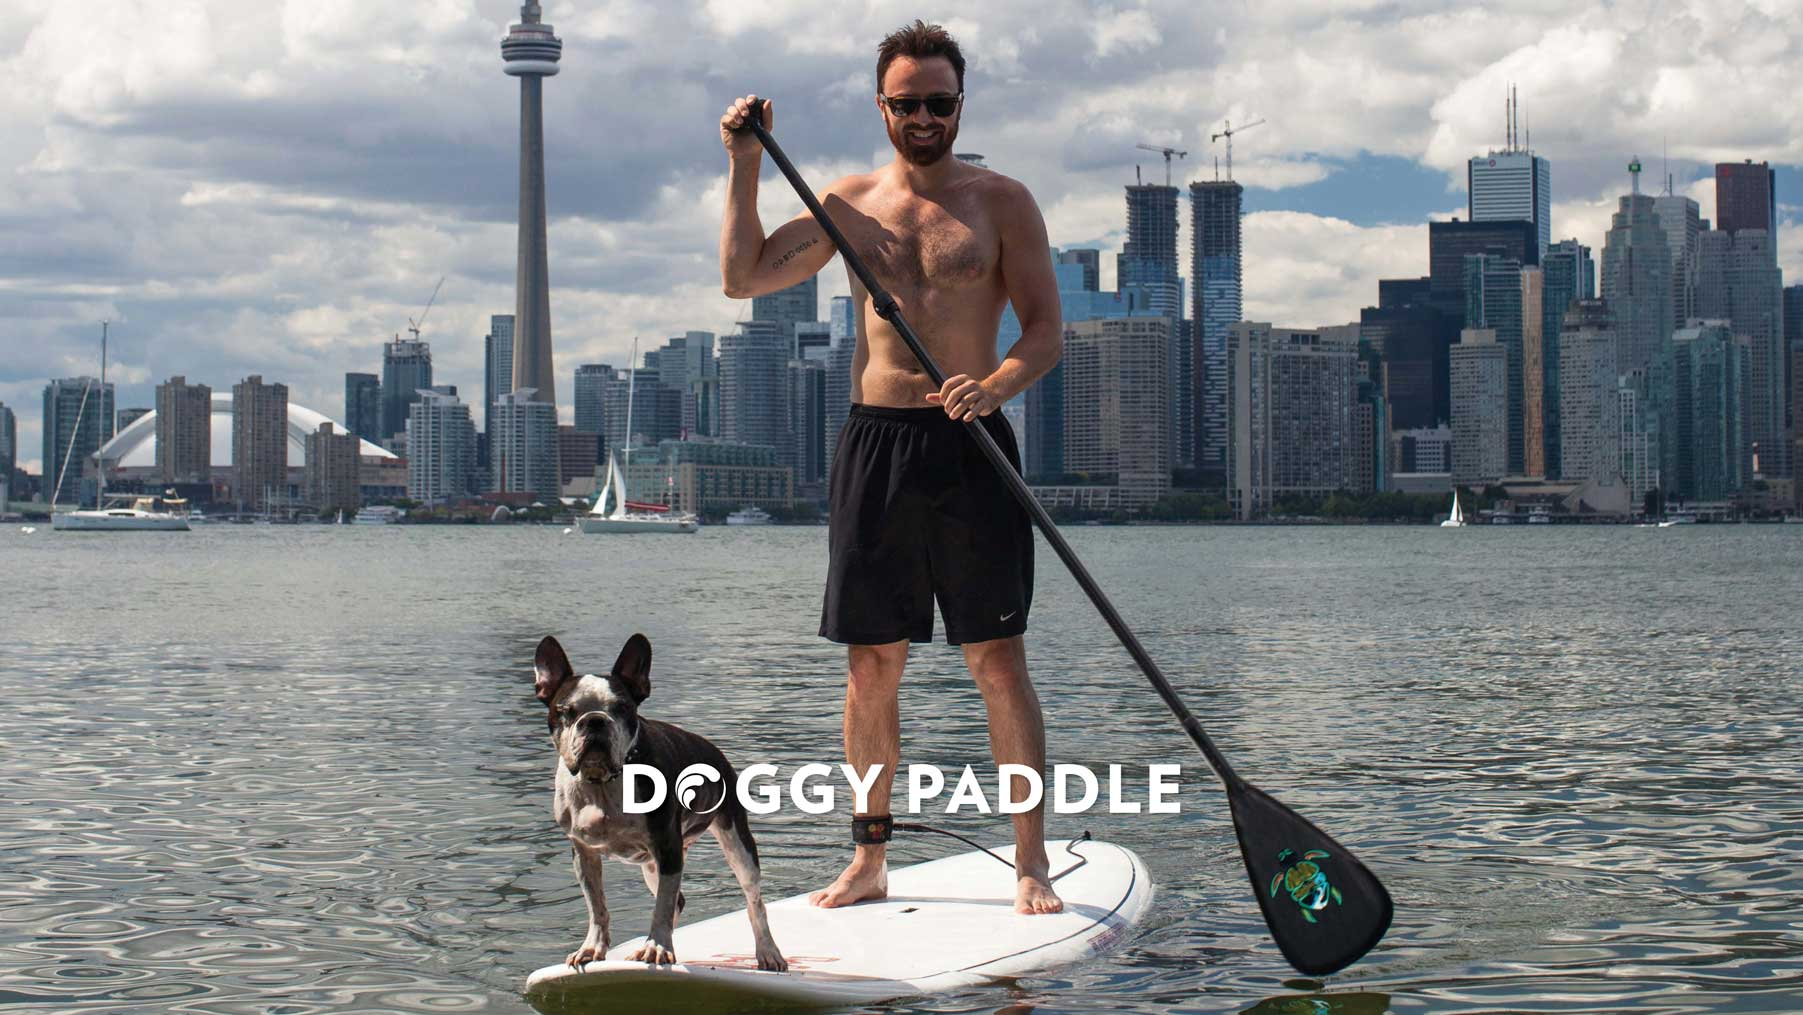 Doggy Paddle SUP Surf the Greats Toronto Standup Paddleboarding